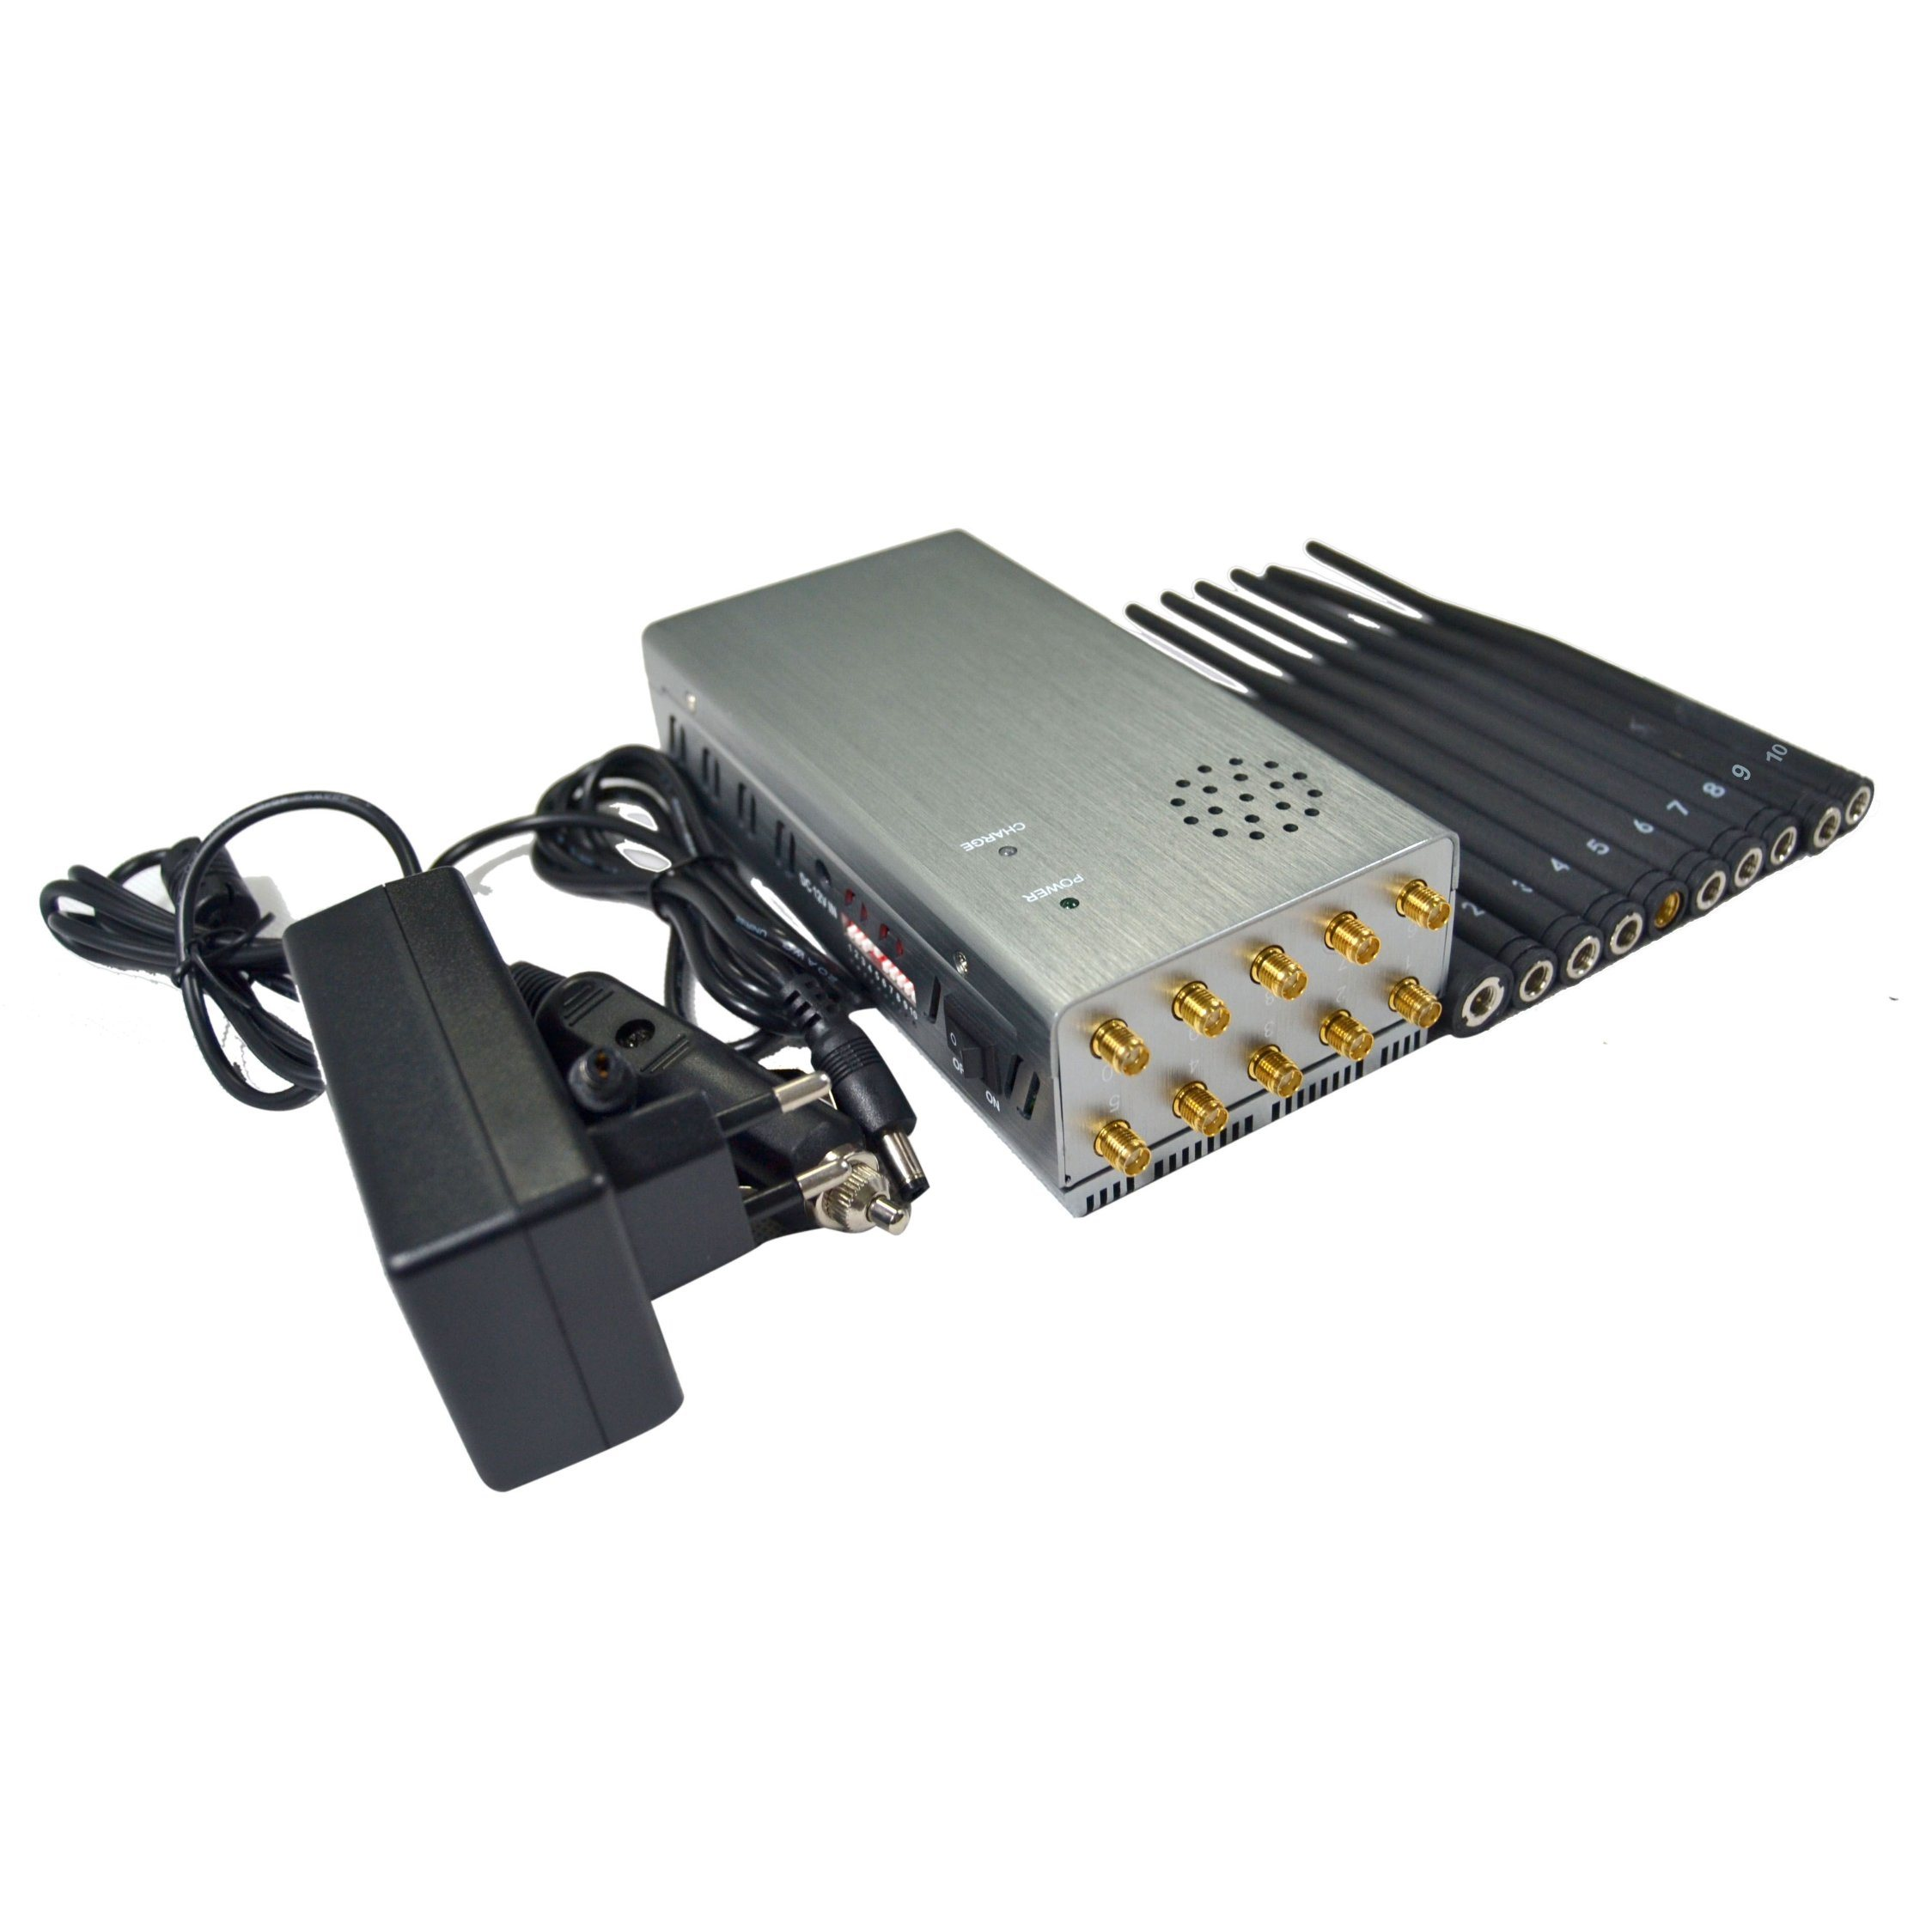 tracker signal blocker for internet - China The King of Portable Jammers with 8000mA and 10 Antennas Including 2g 3G 4G 5g GPS 433MHz315MHz868MHz WiFi - China 8000mA Battery Jammer, Large Volume Power Signal Blocker